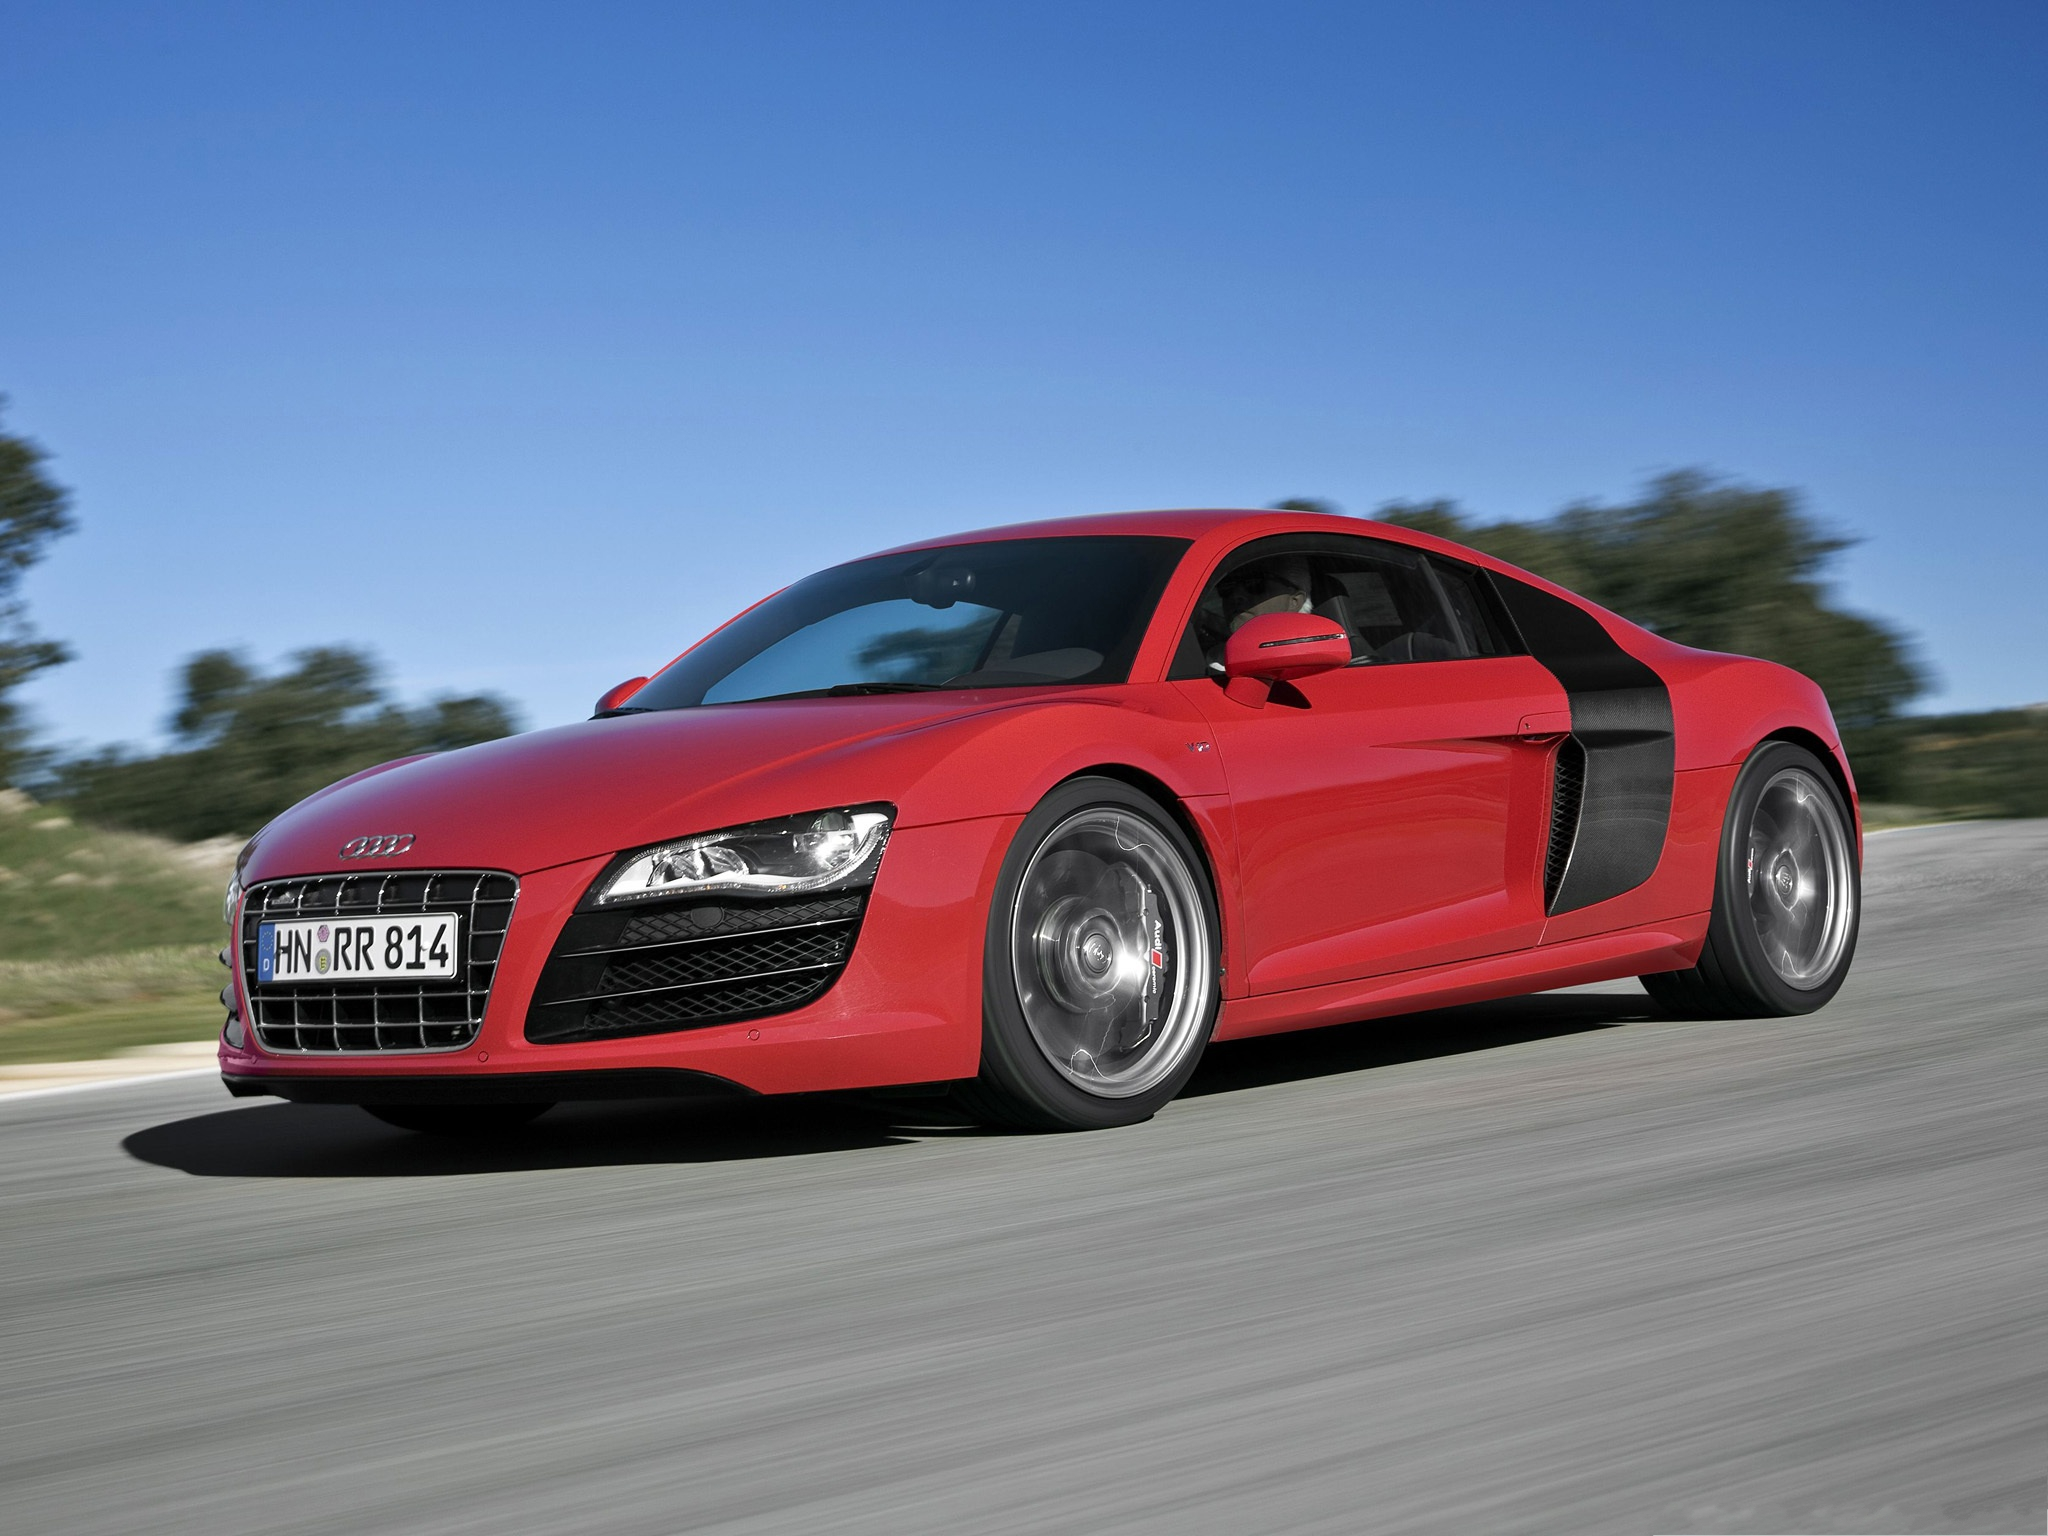 Beautiful Cars Picture, Super Audi R8 Car in Incredible Speed 2048X1536 free wallpaper download ...